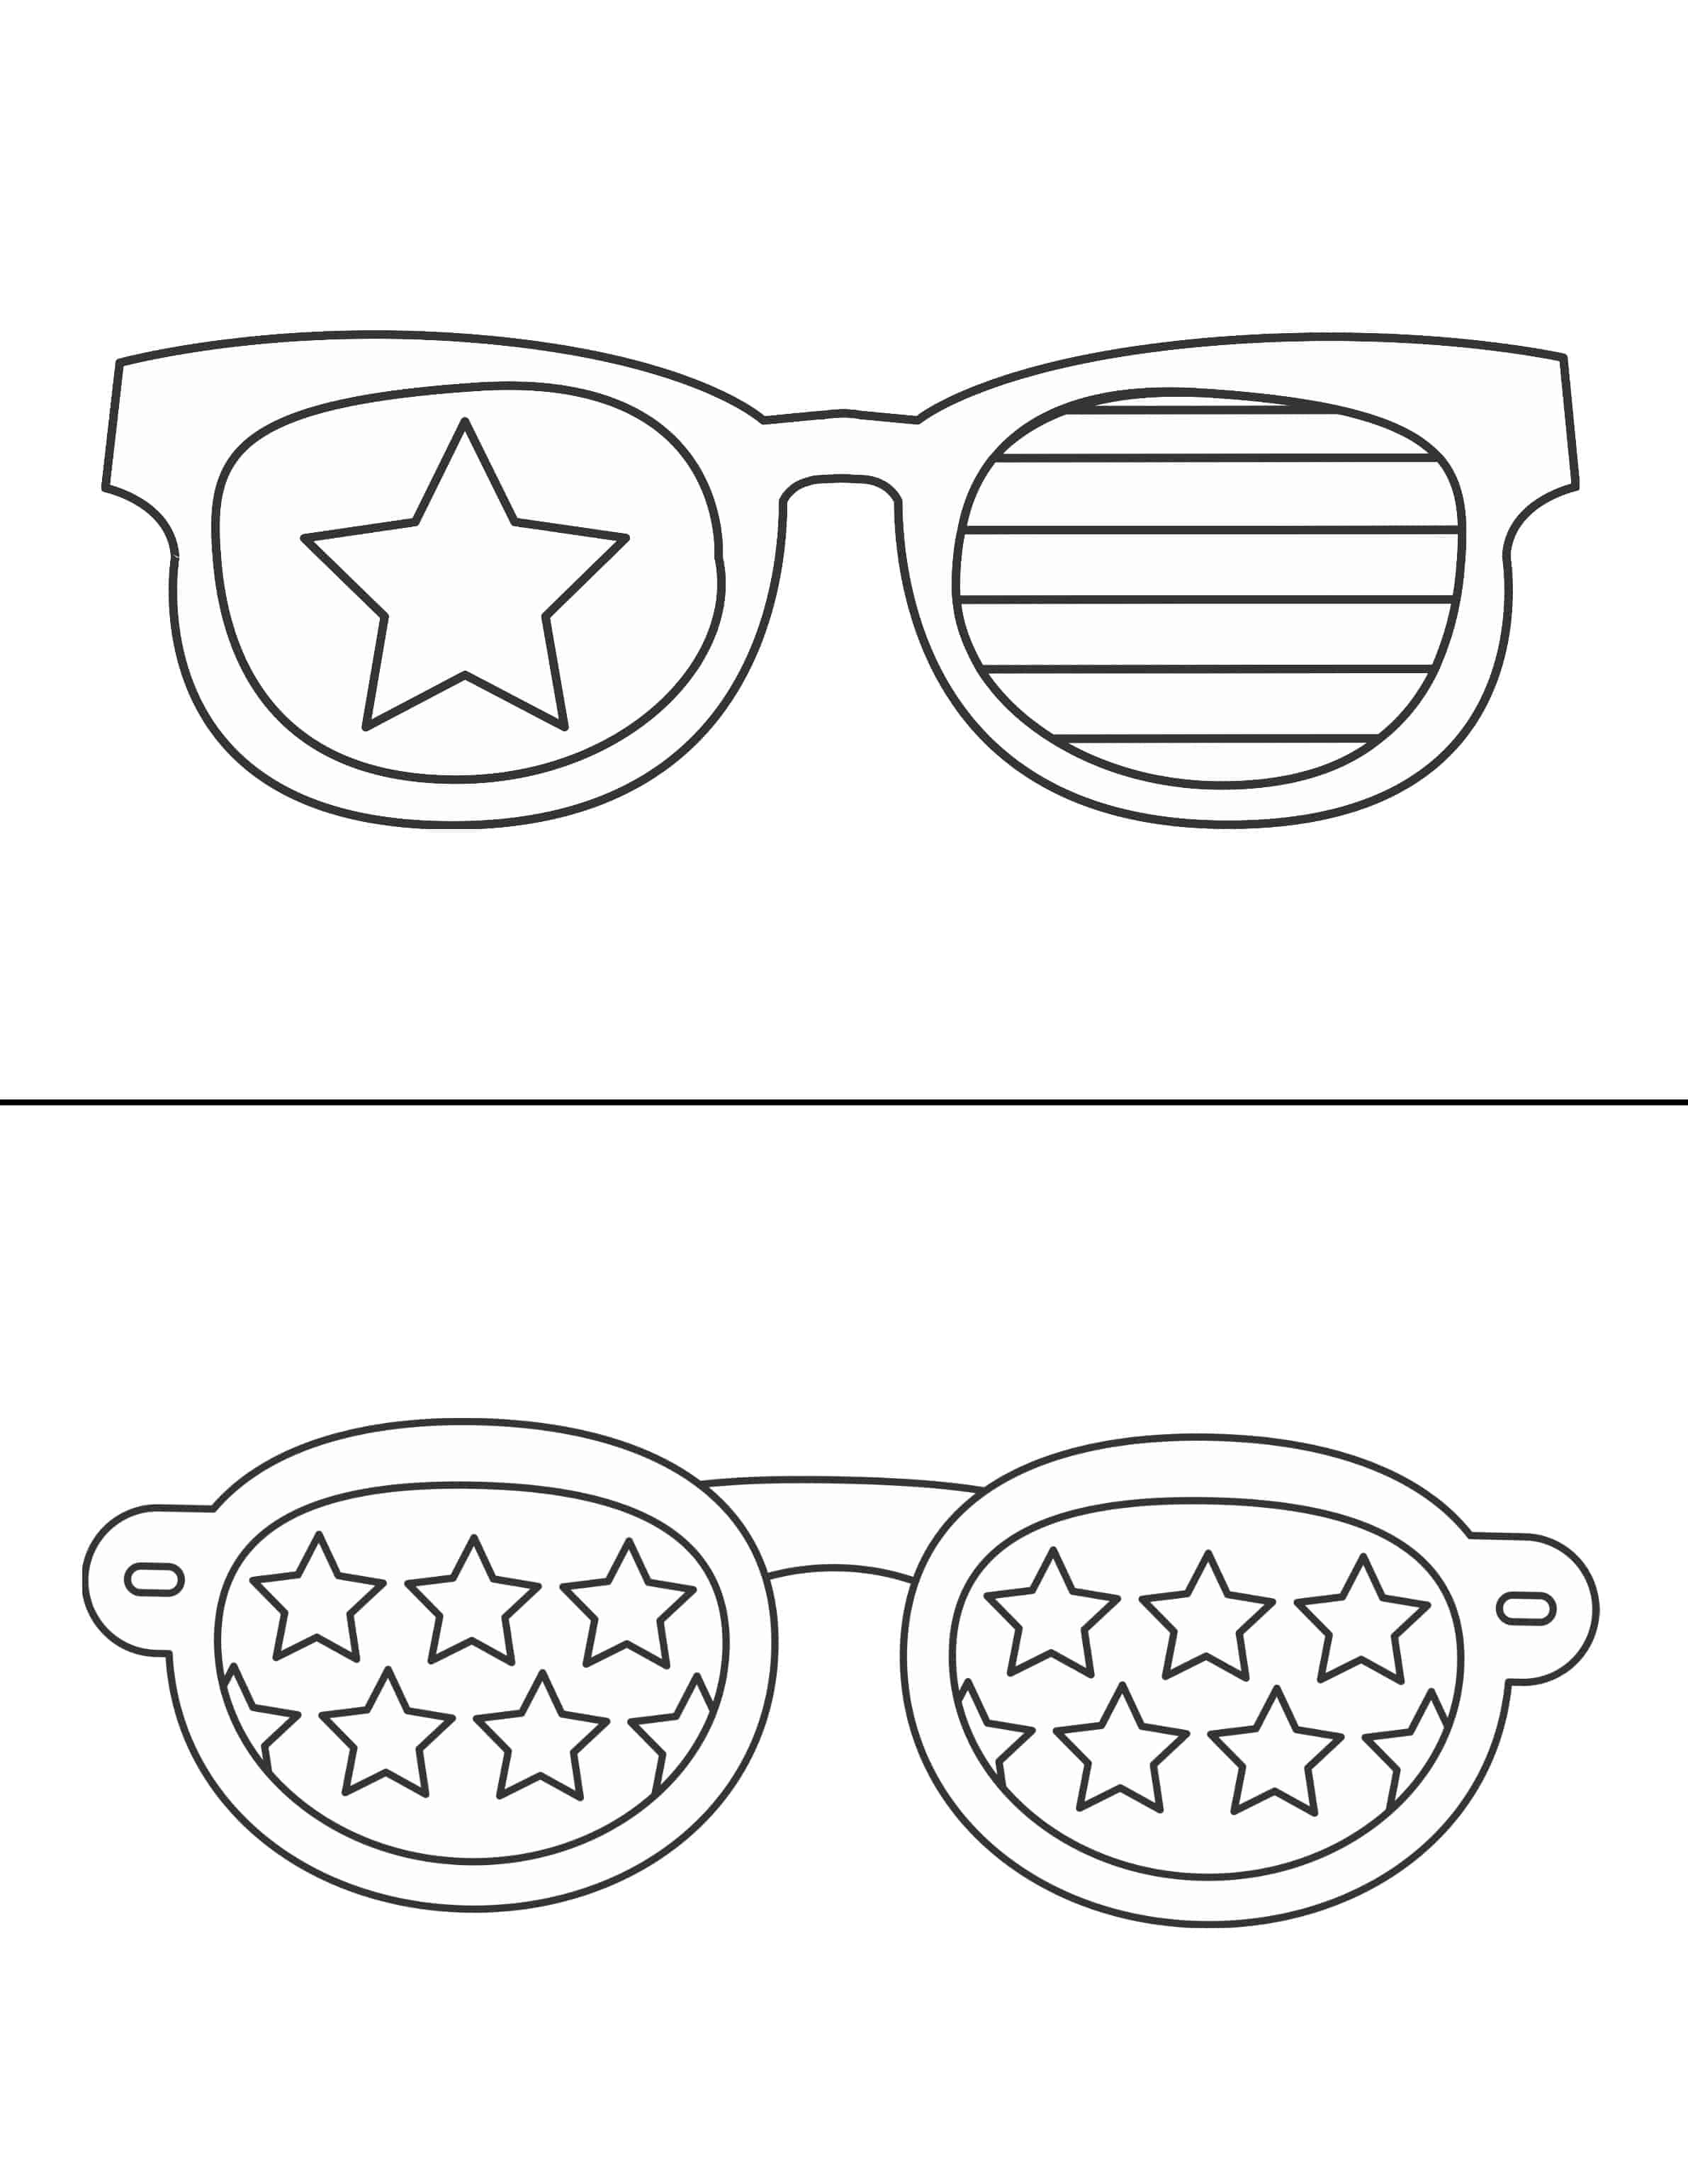 4 of july coloring sheets 4 of july coloring sheets 4 coloring july of sheets